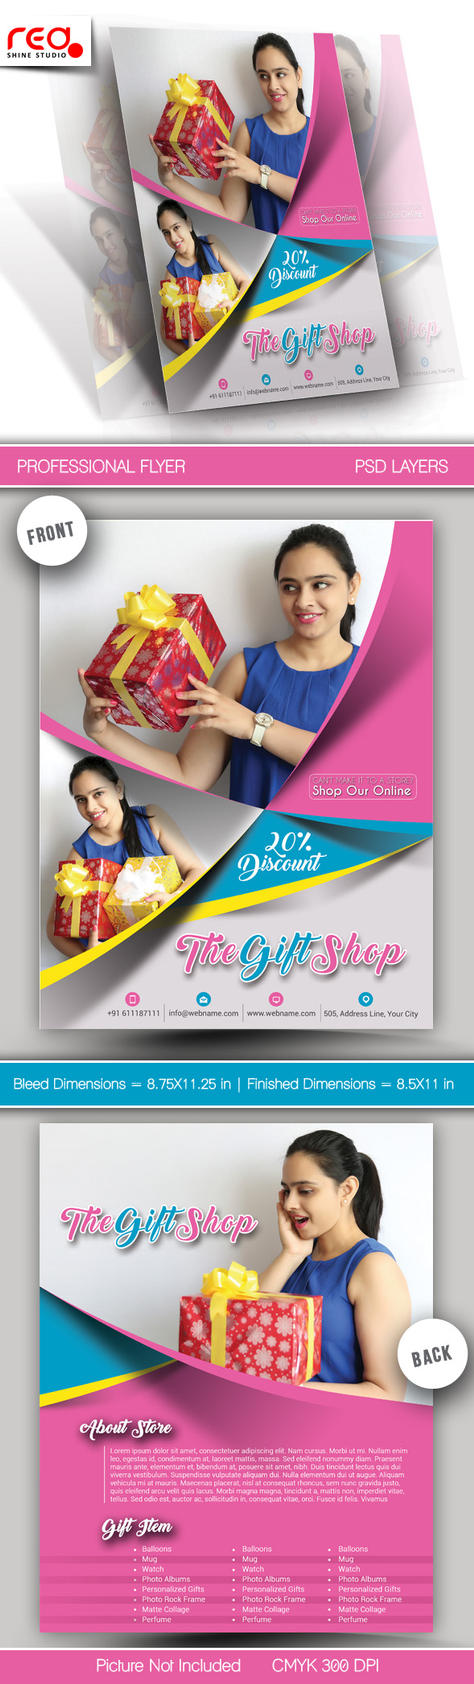 Gift Shop Flyer Poster Template by Redshinestudio